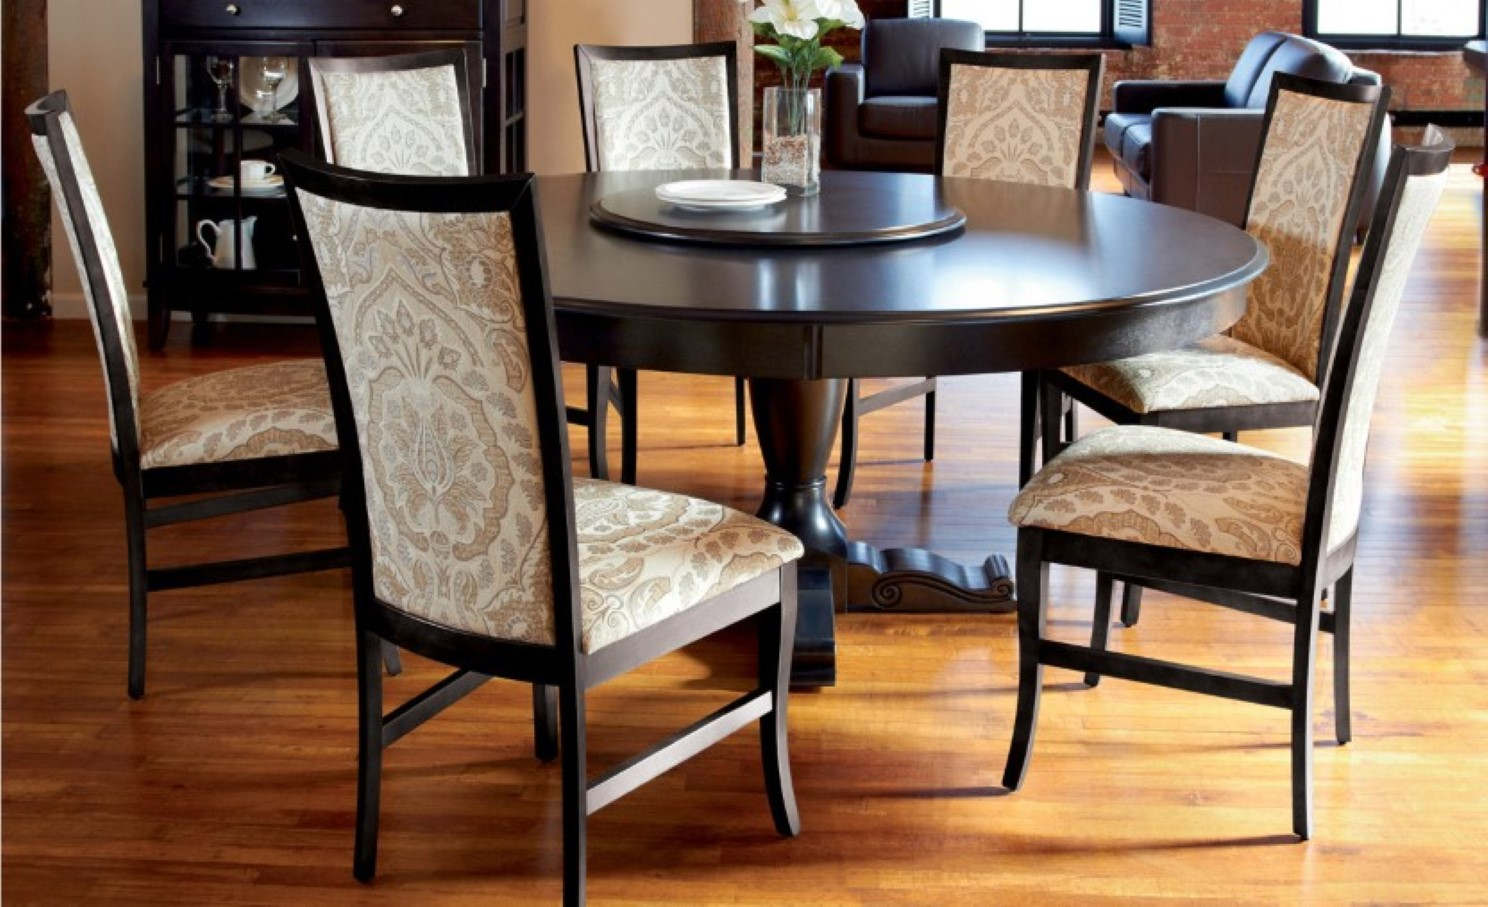 Round Dining Room Sets With Leaf round dining table set with leaf | homesfeed